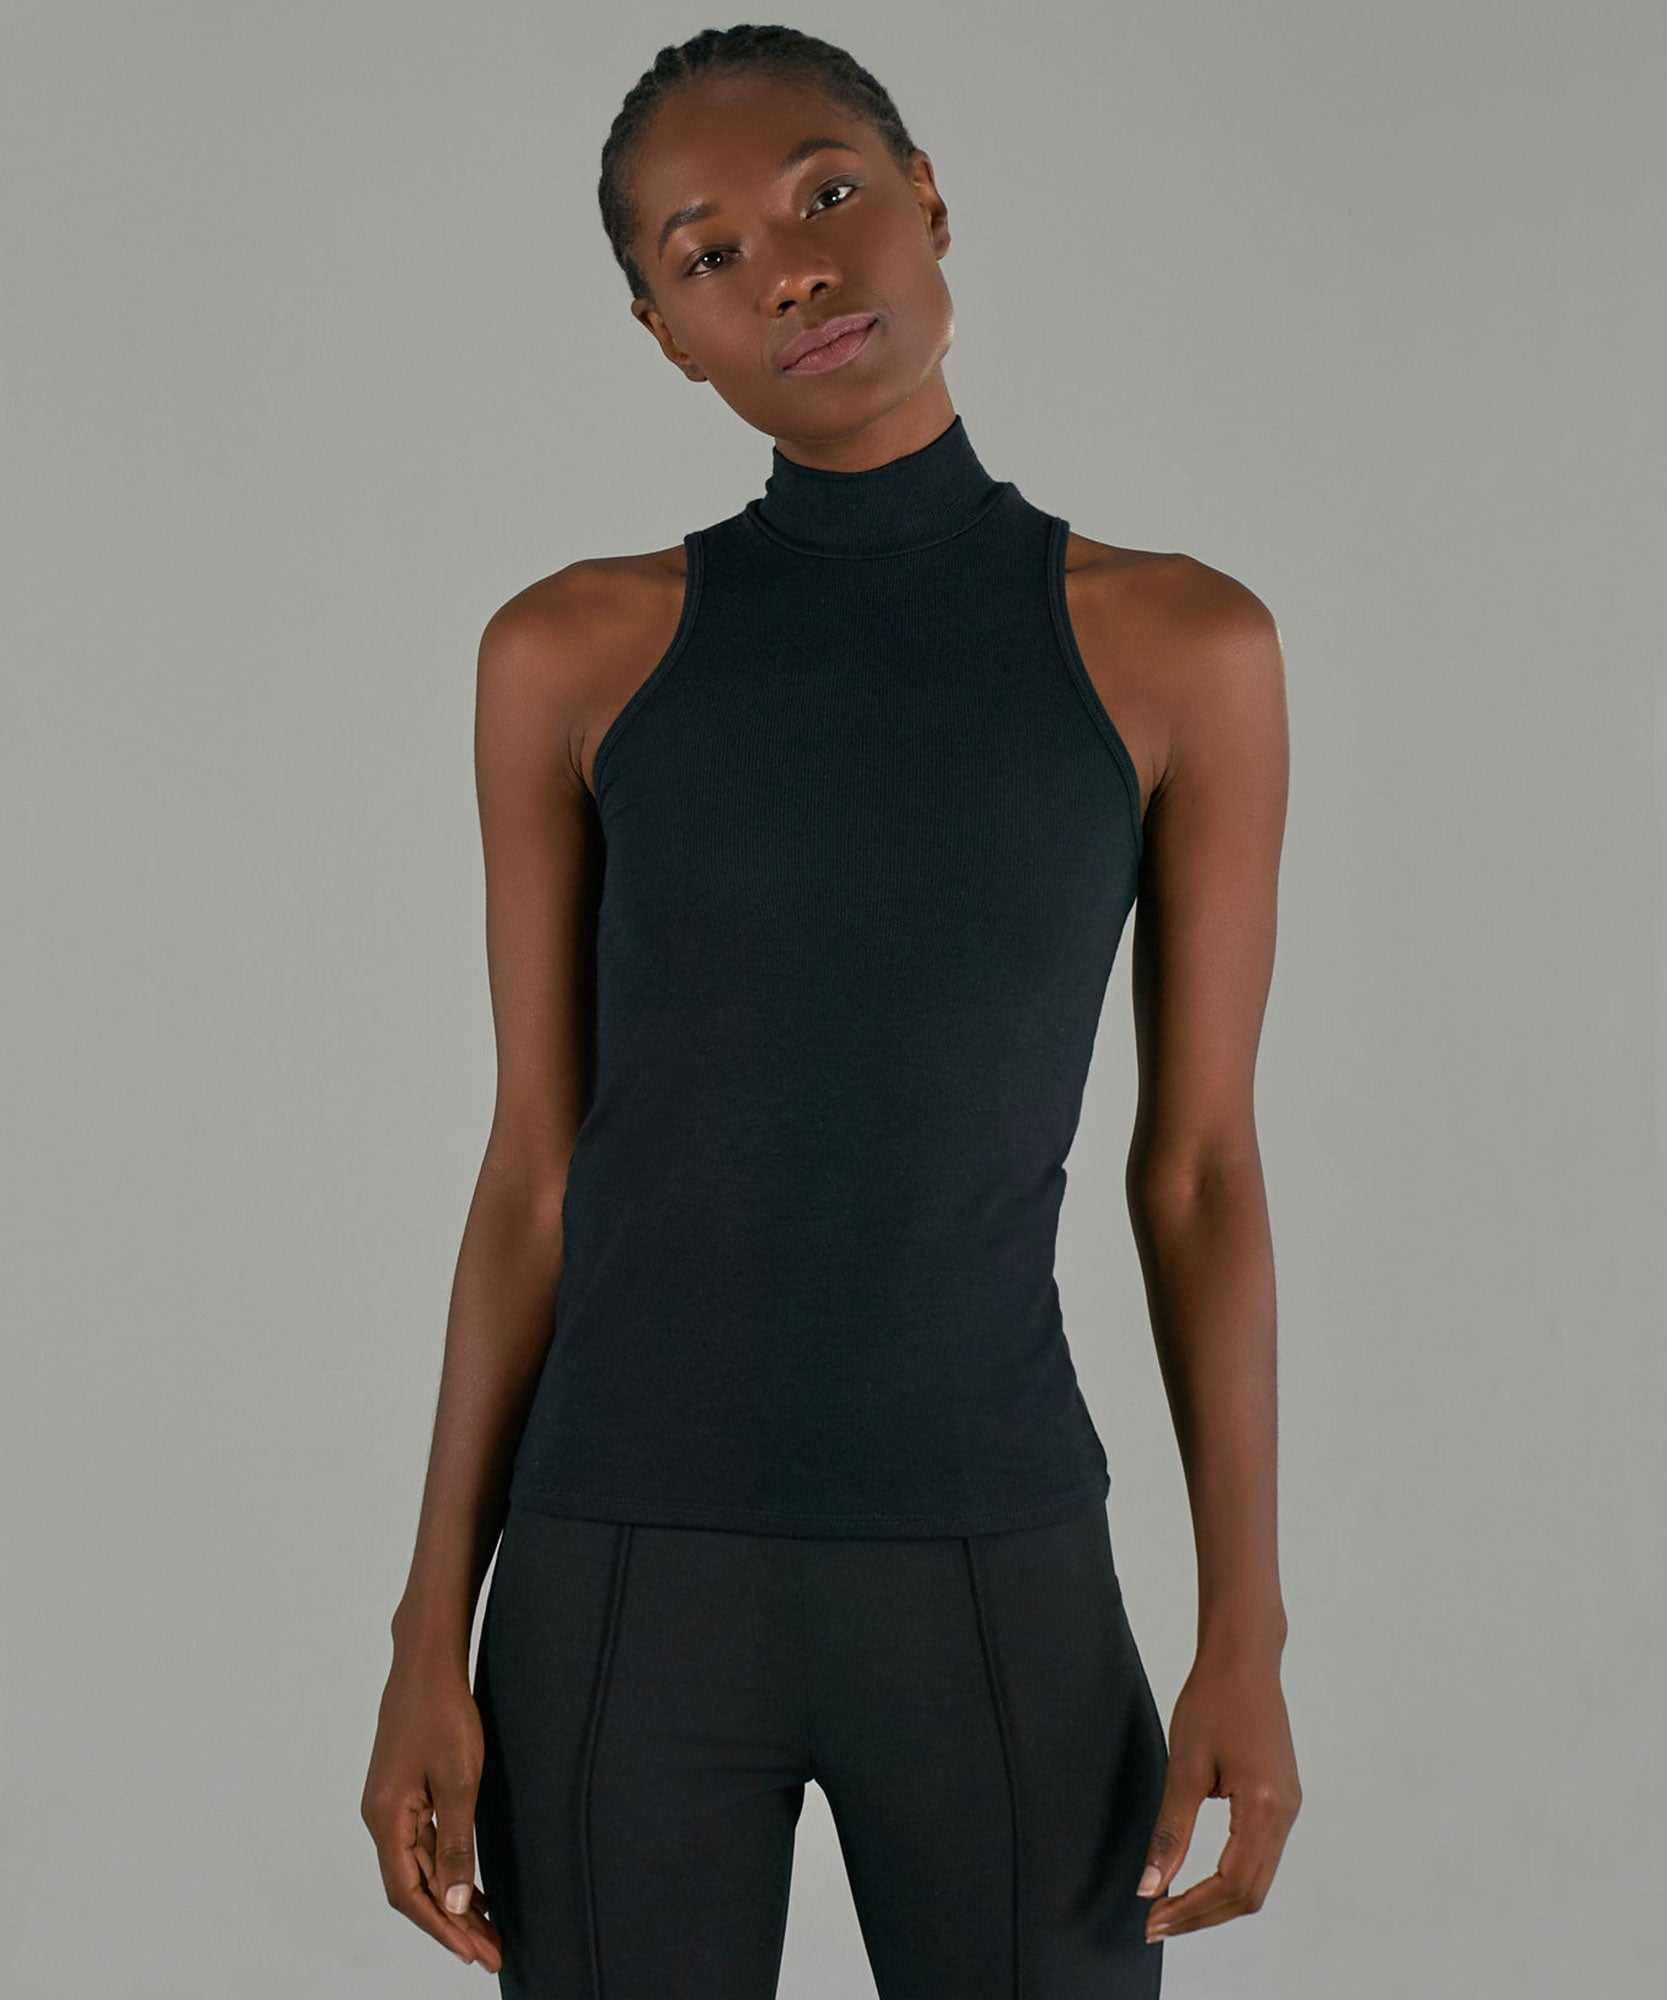 Black Modal Rib Sleeveless Mock Neck Top - Women's Ribbed Top by ATM Anthony Thomas Melillo